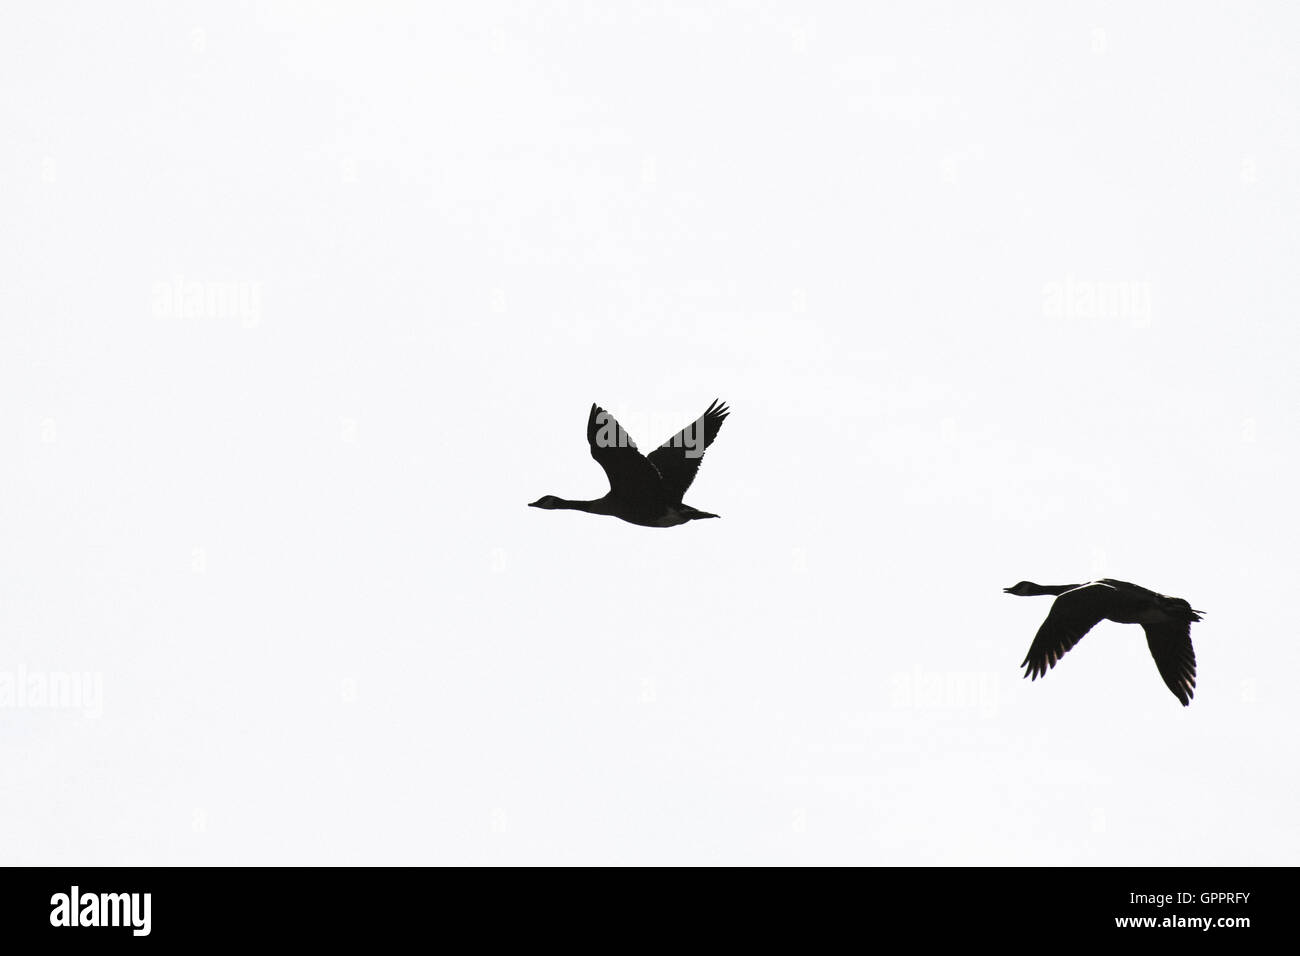 Contrasting black and white image of geese in flight - Stock Image